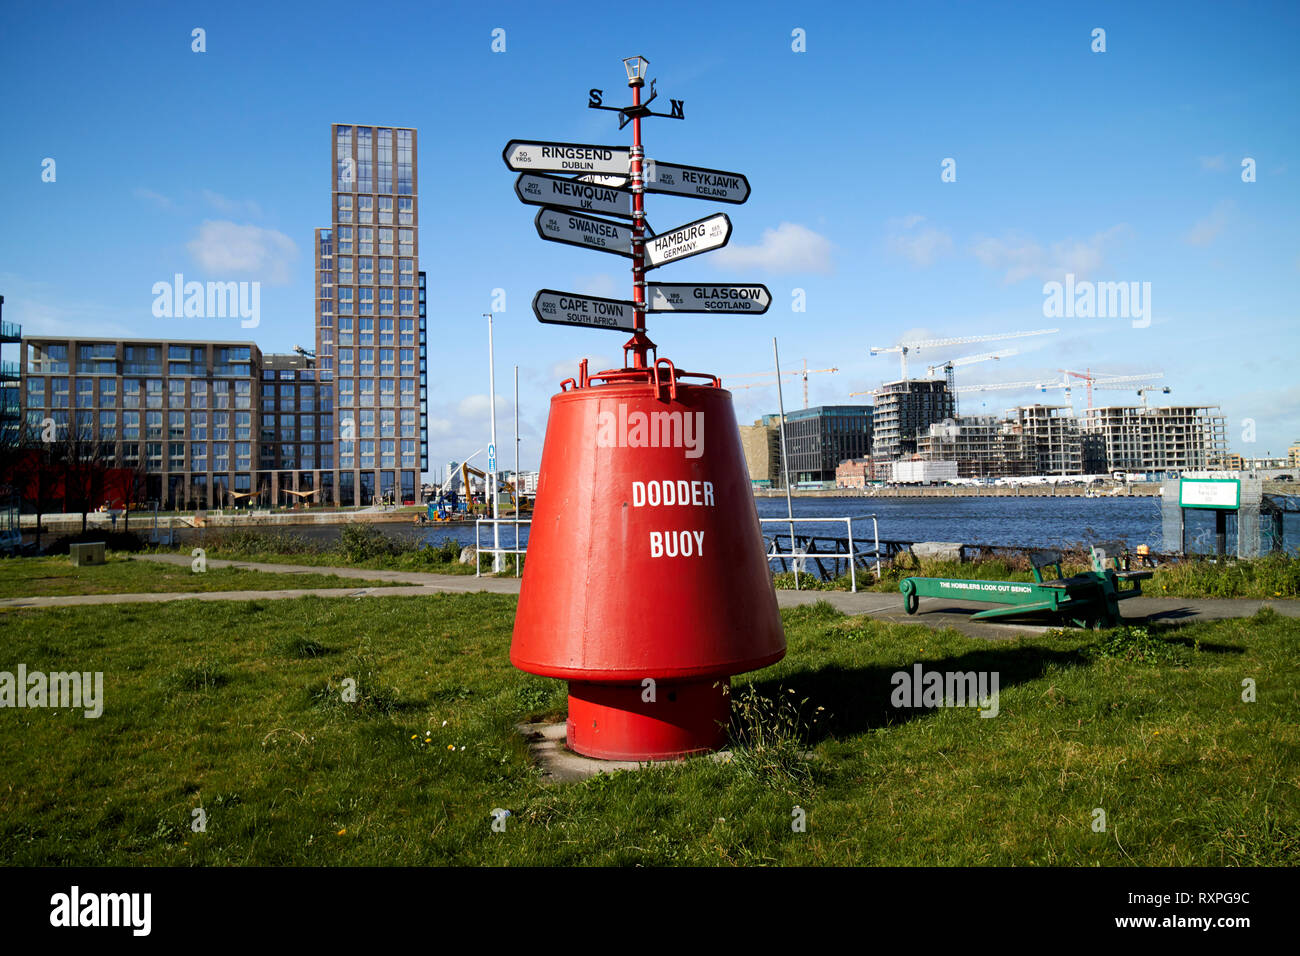 Dodder Buoy with direction signs and distance markers to various uk and world cities dublin docklands Dublin Republic of Ireland europe - Stock Image